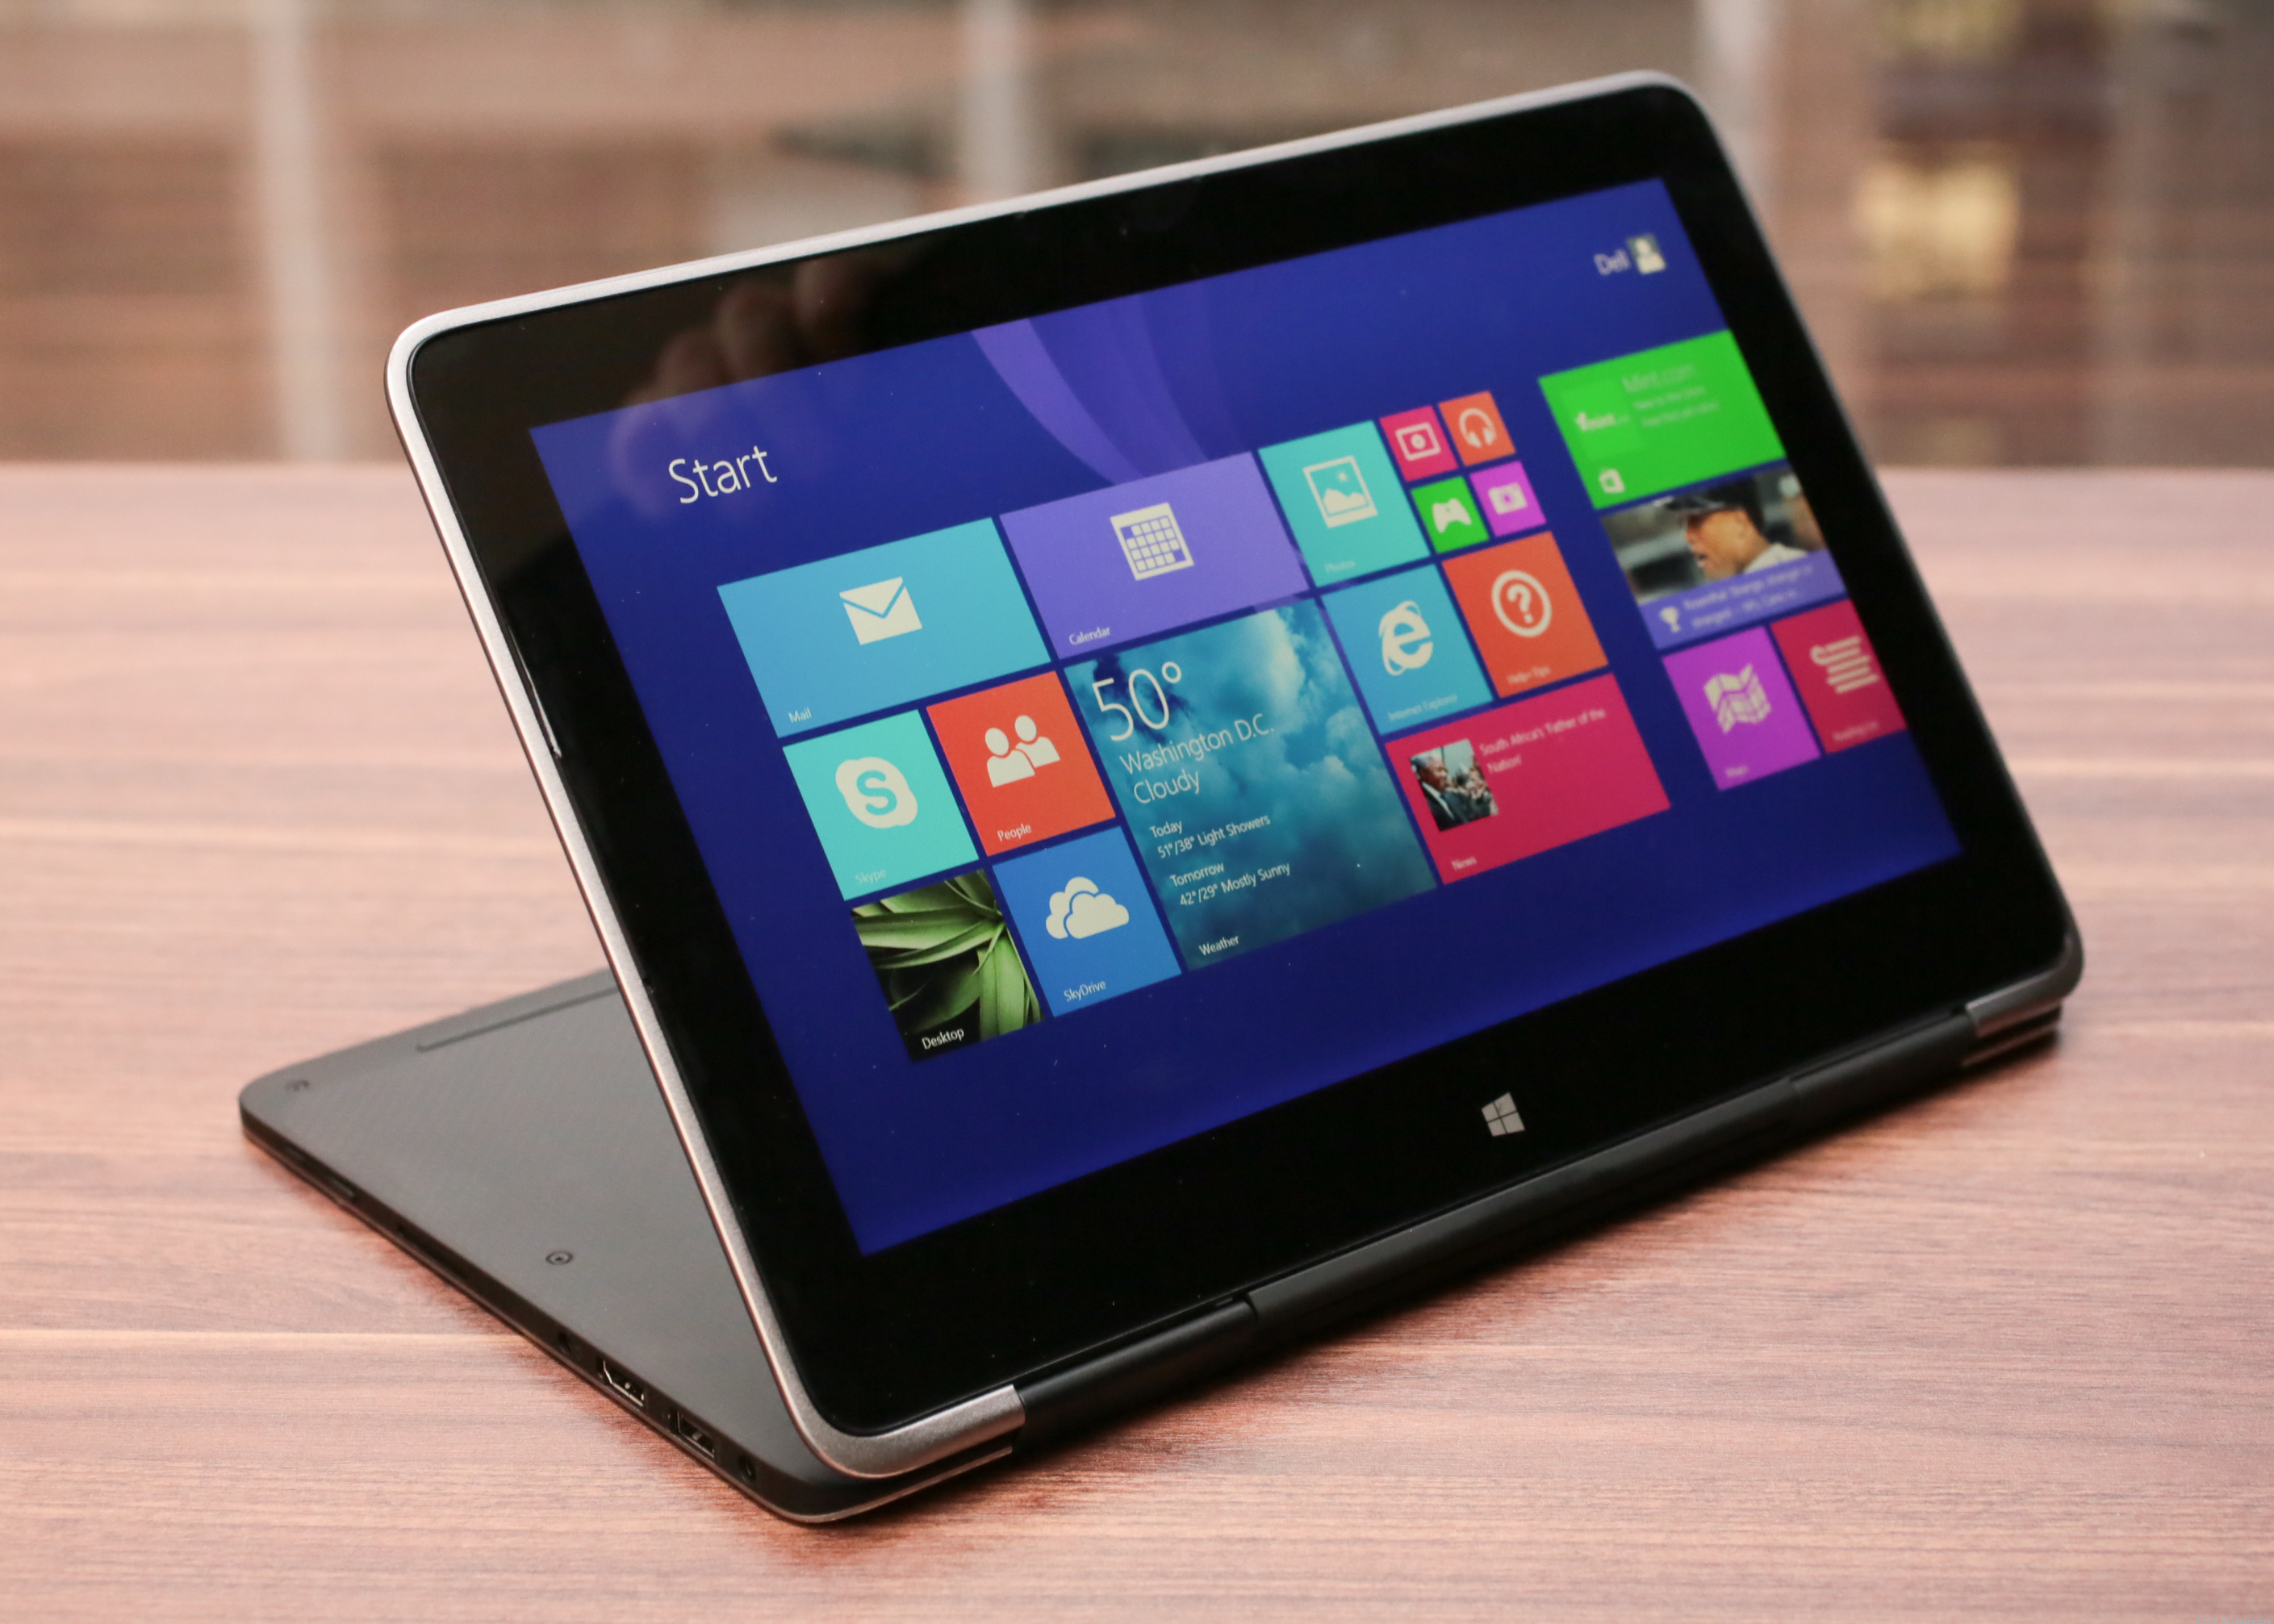 Dell XPS 11 (Fall 2013)